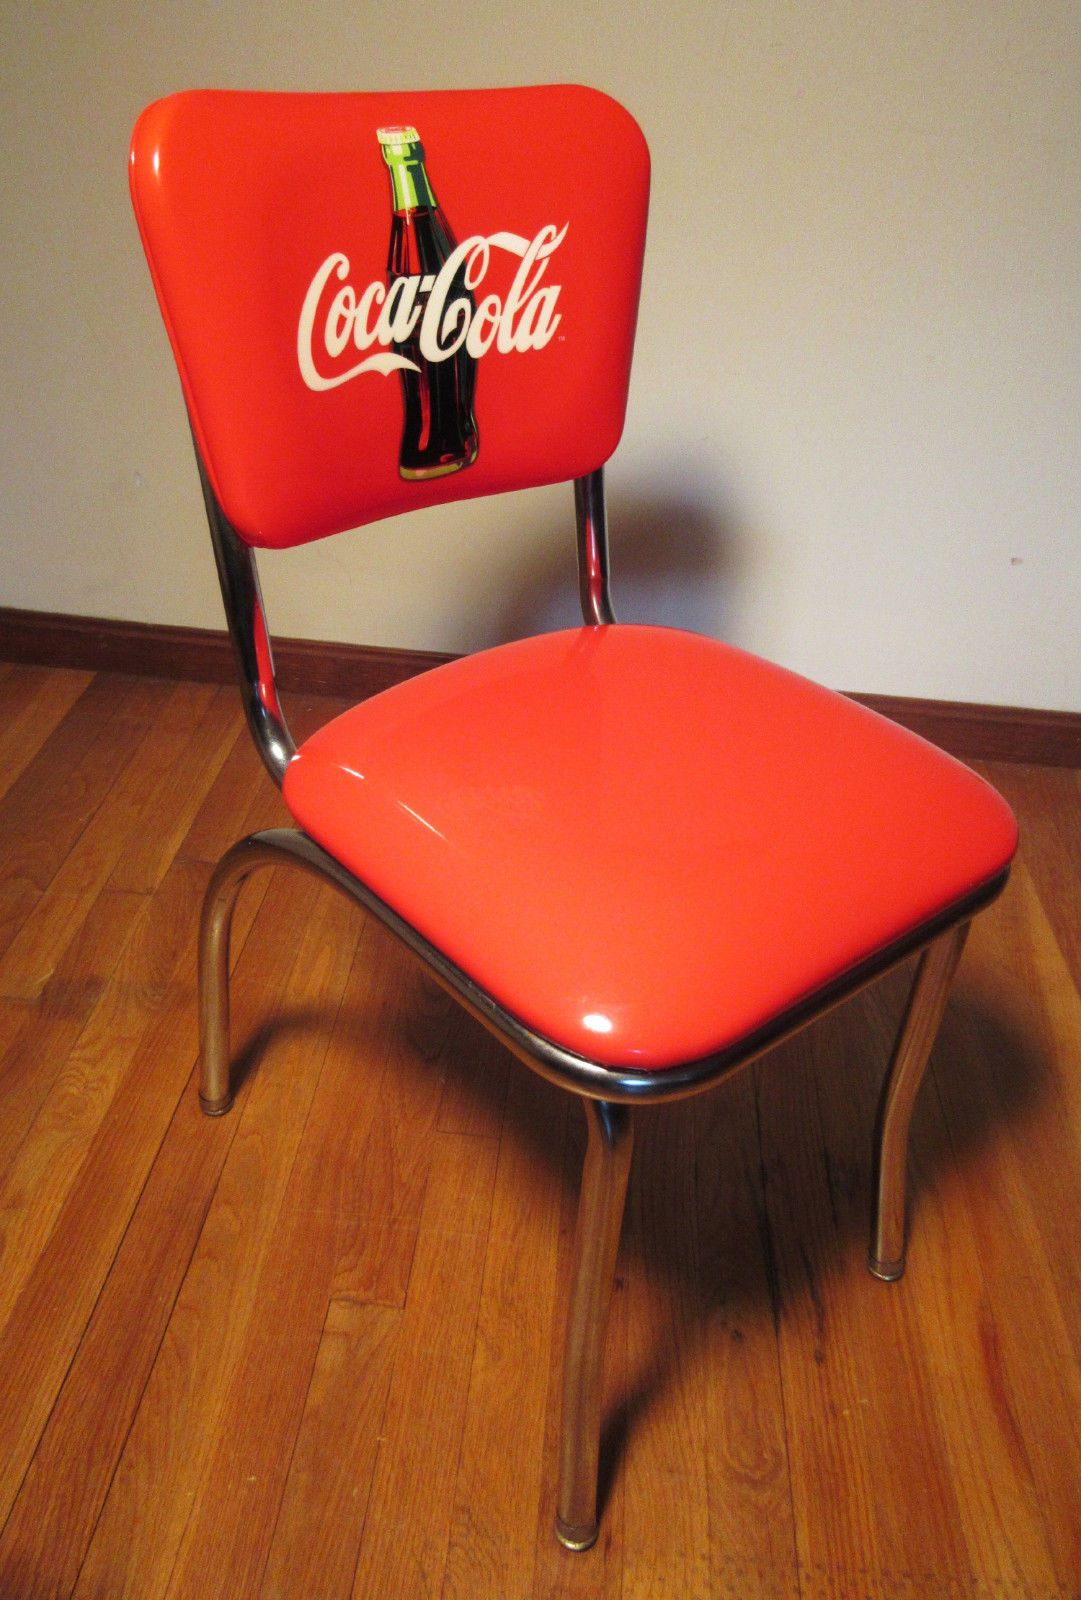 a iconic diner chair w coca cola coke bottle logo red vinyl